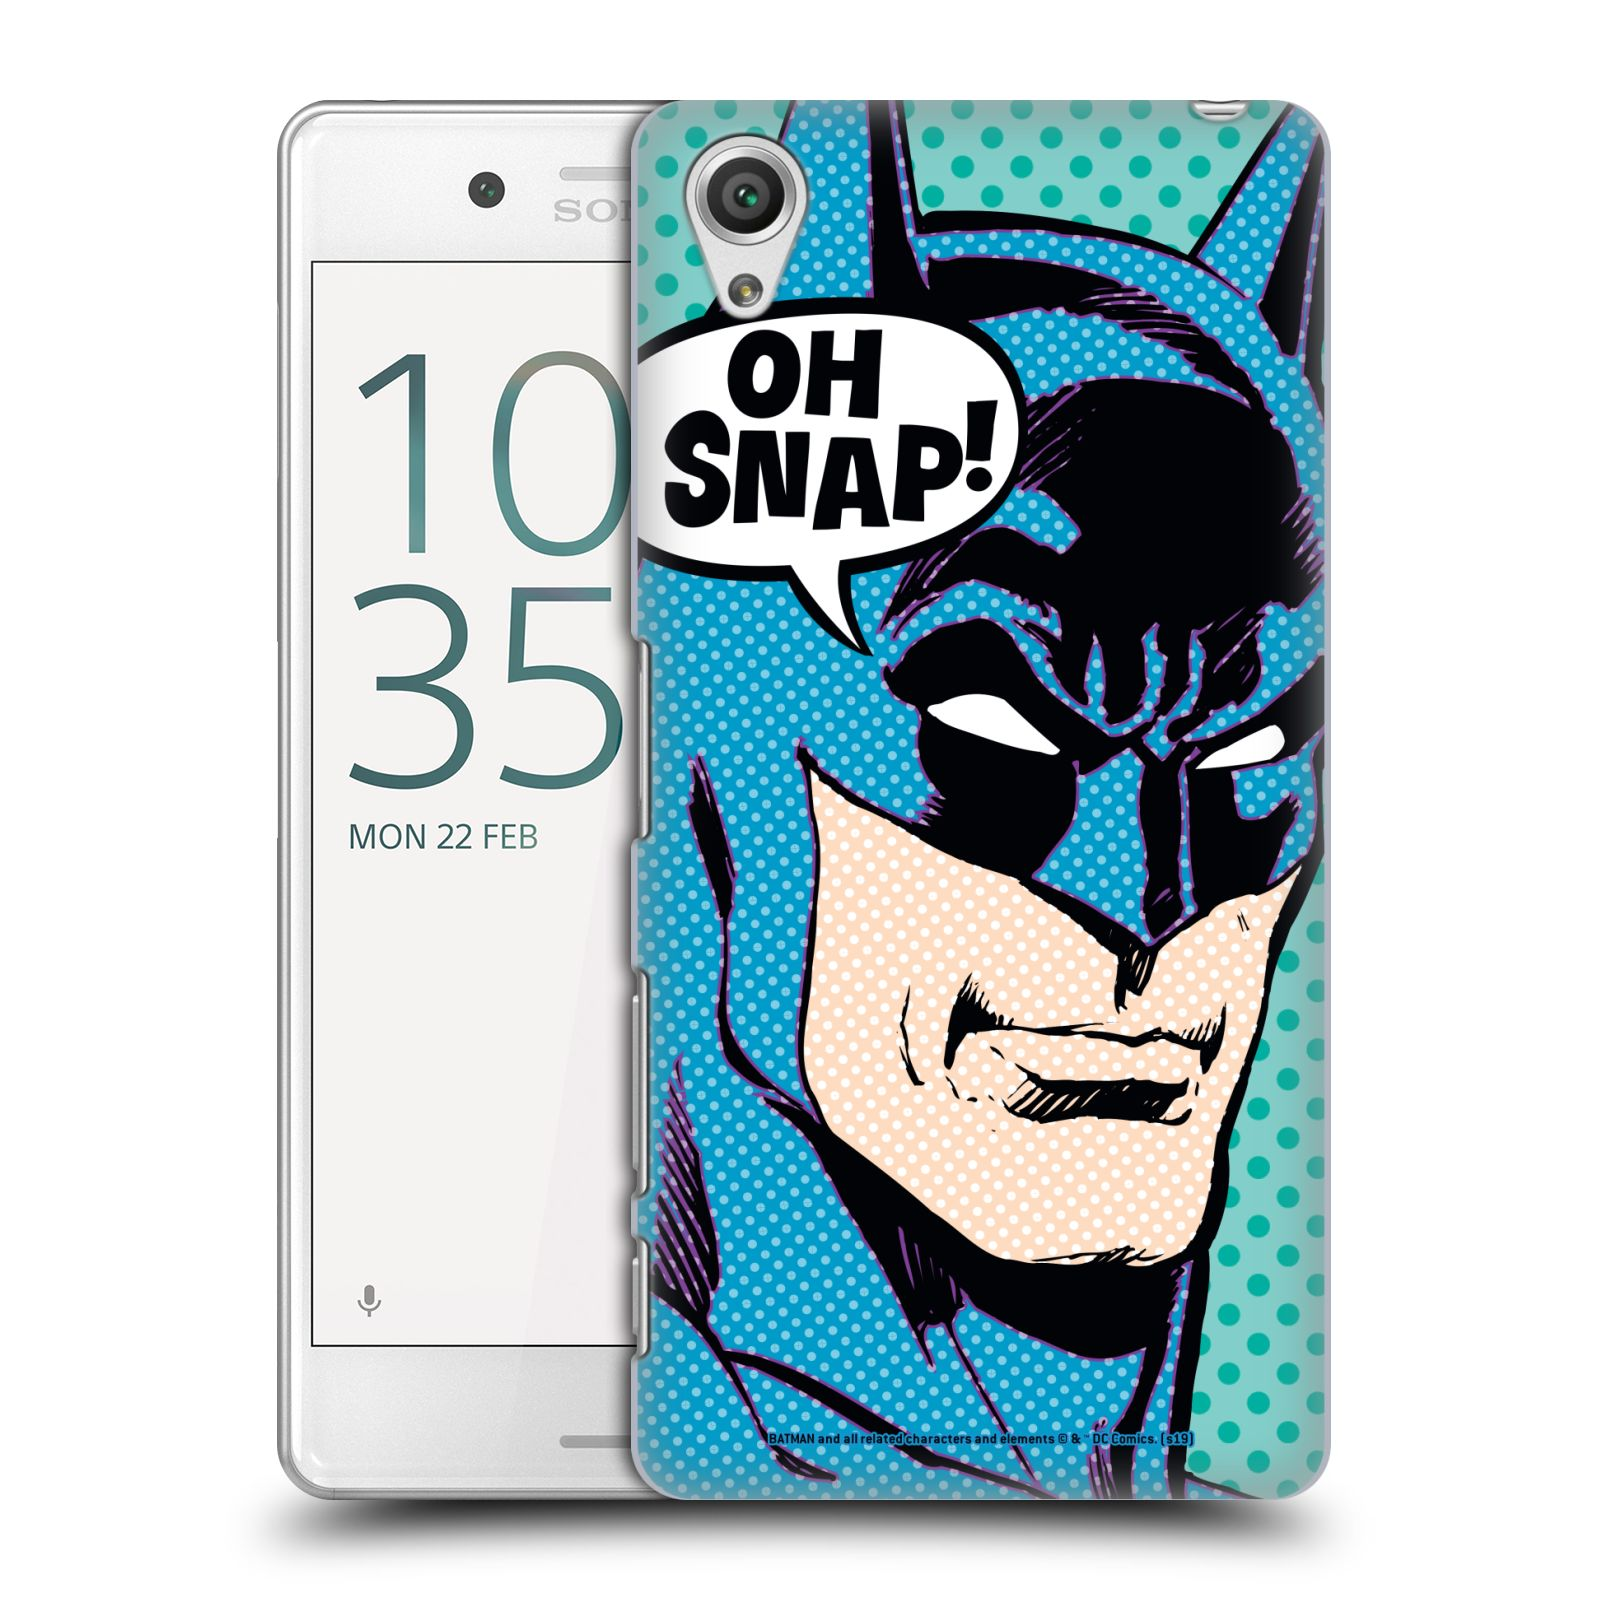 Pouzdro na mobil Sony Xperia X PERFORMANCE - HEAD CASE - DC komix Batman Pop Art tvář